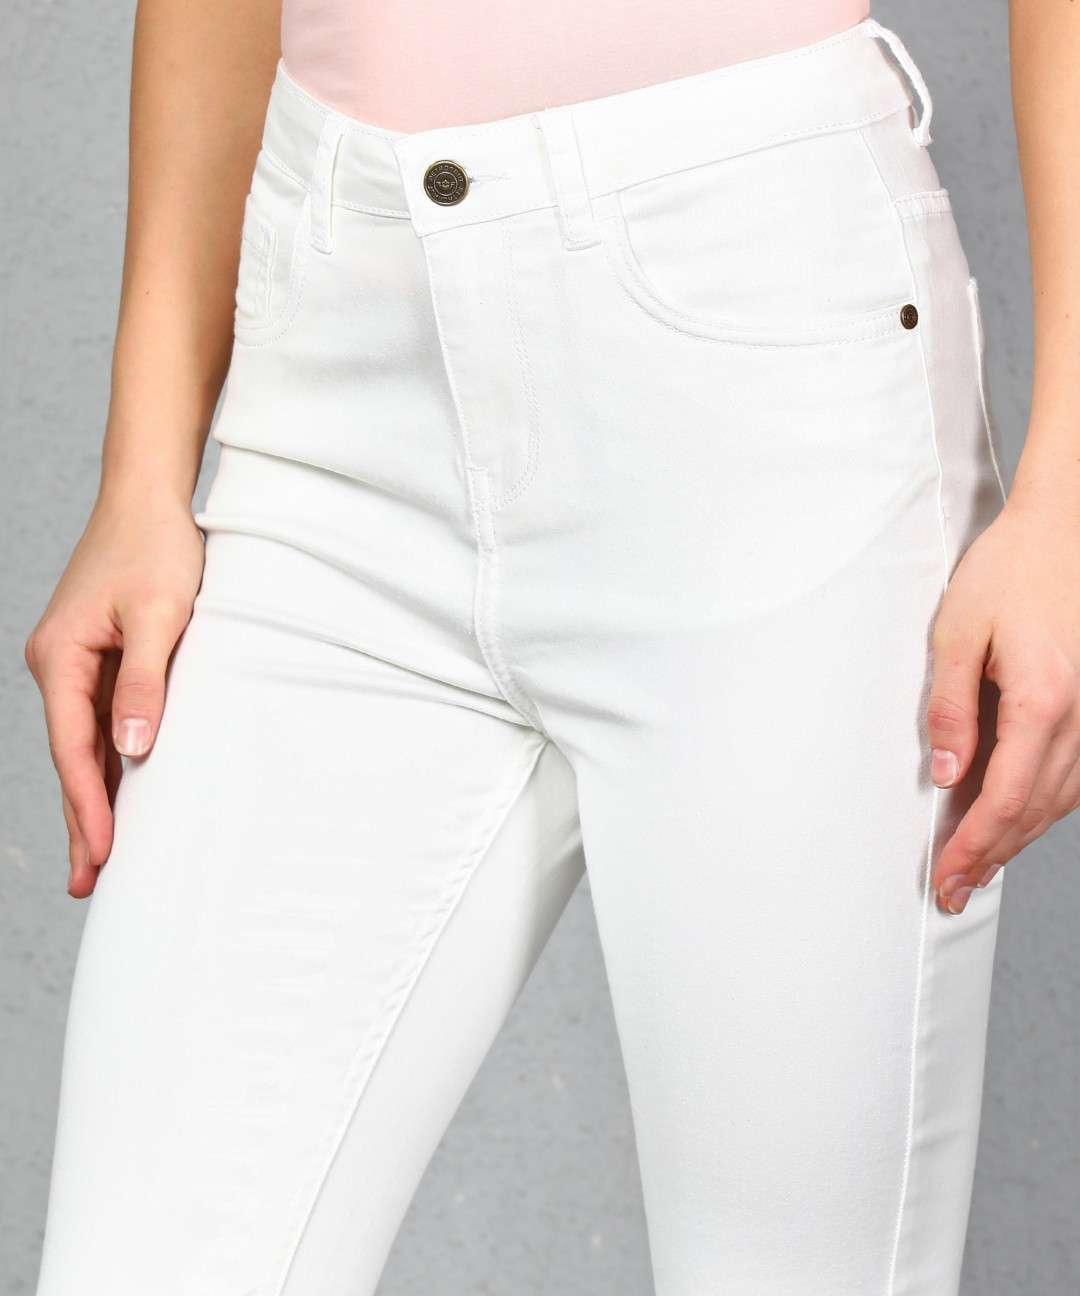 JEANS WORLD LADIES JEANS DESIGNER SINGLE BUTTON WITH POCKET JEANS